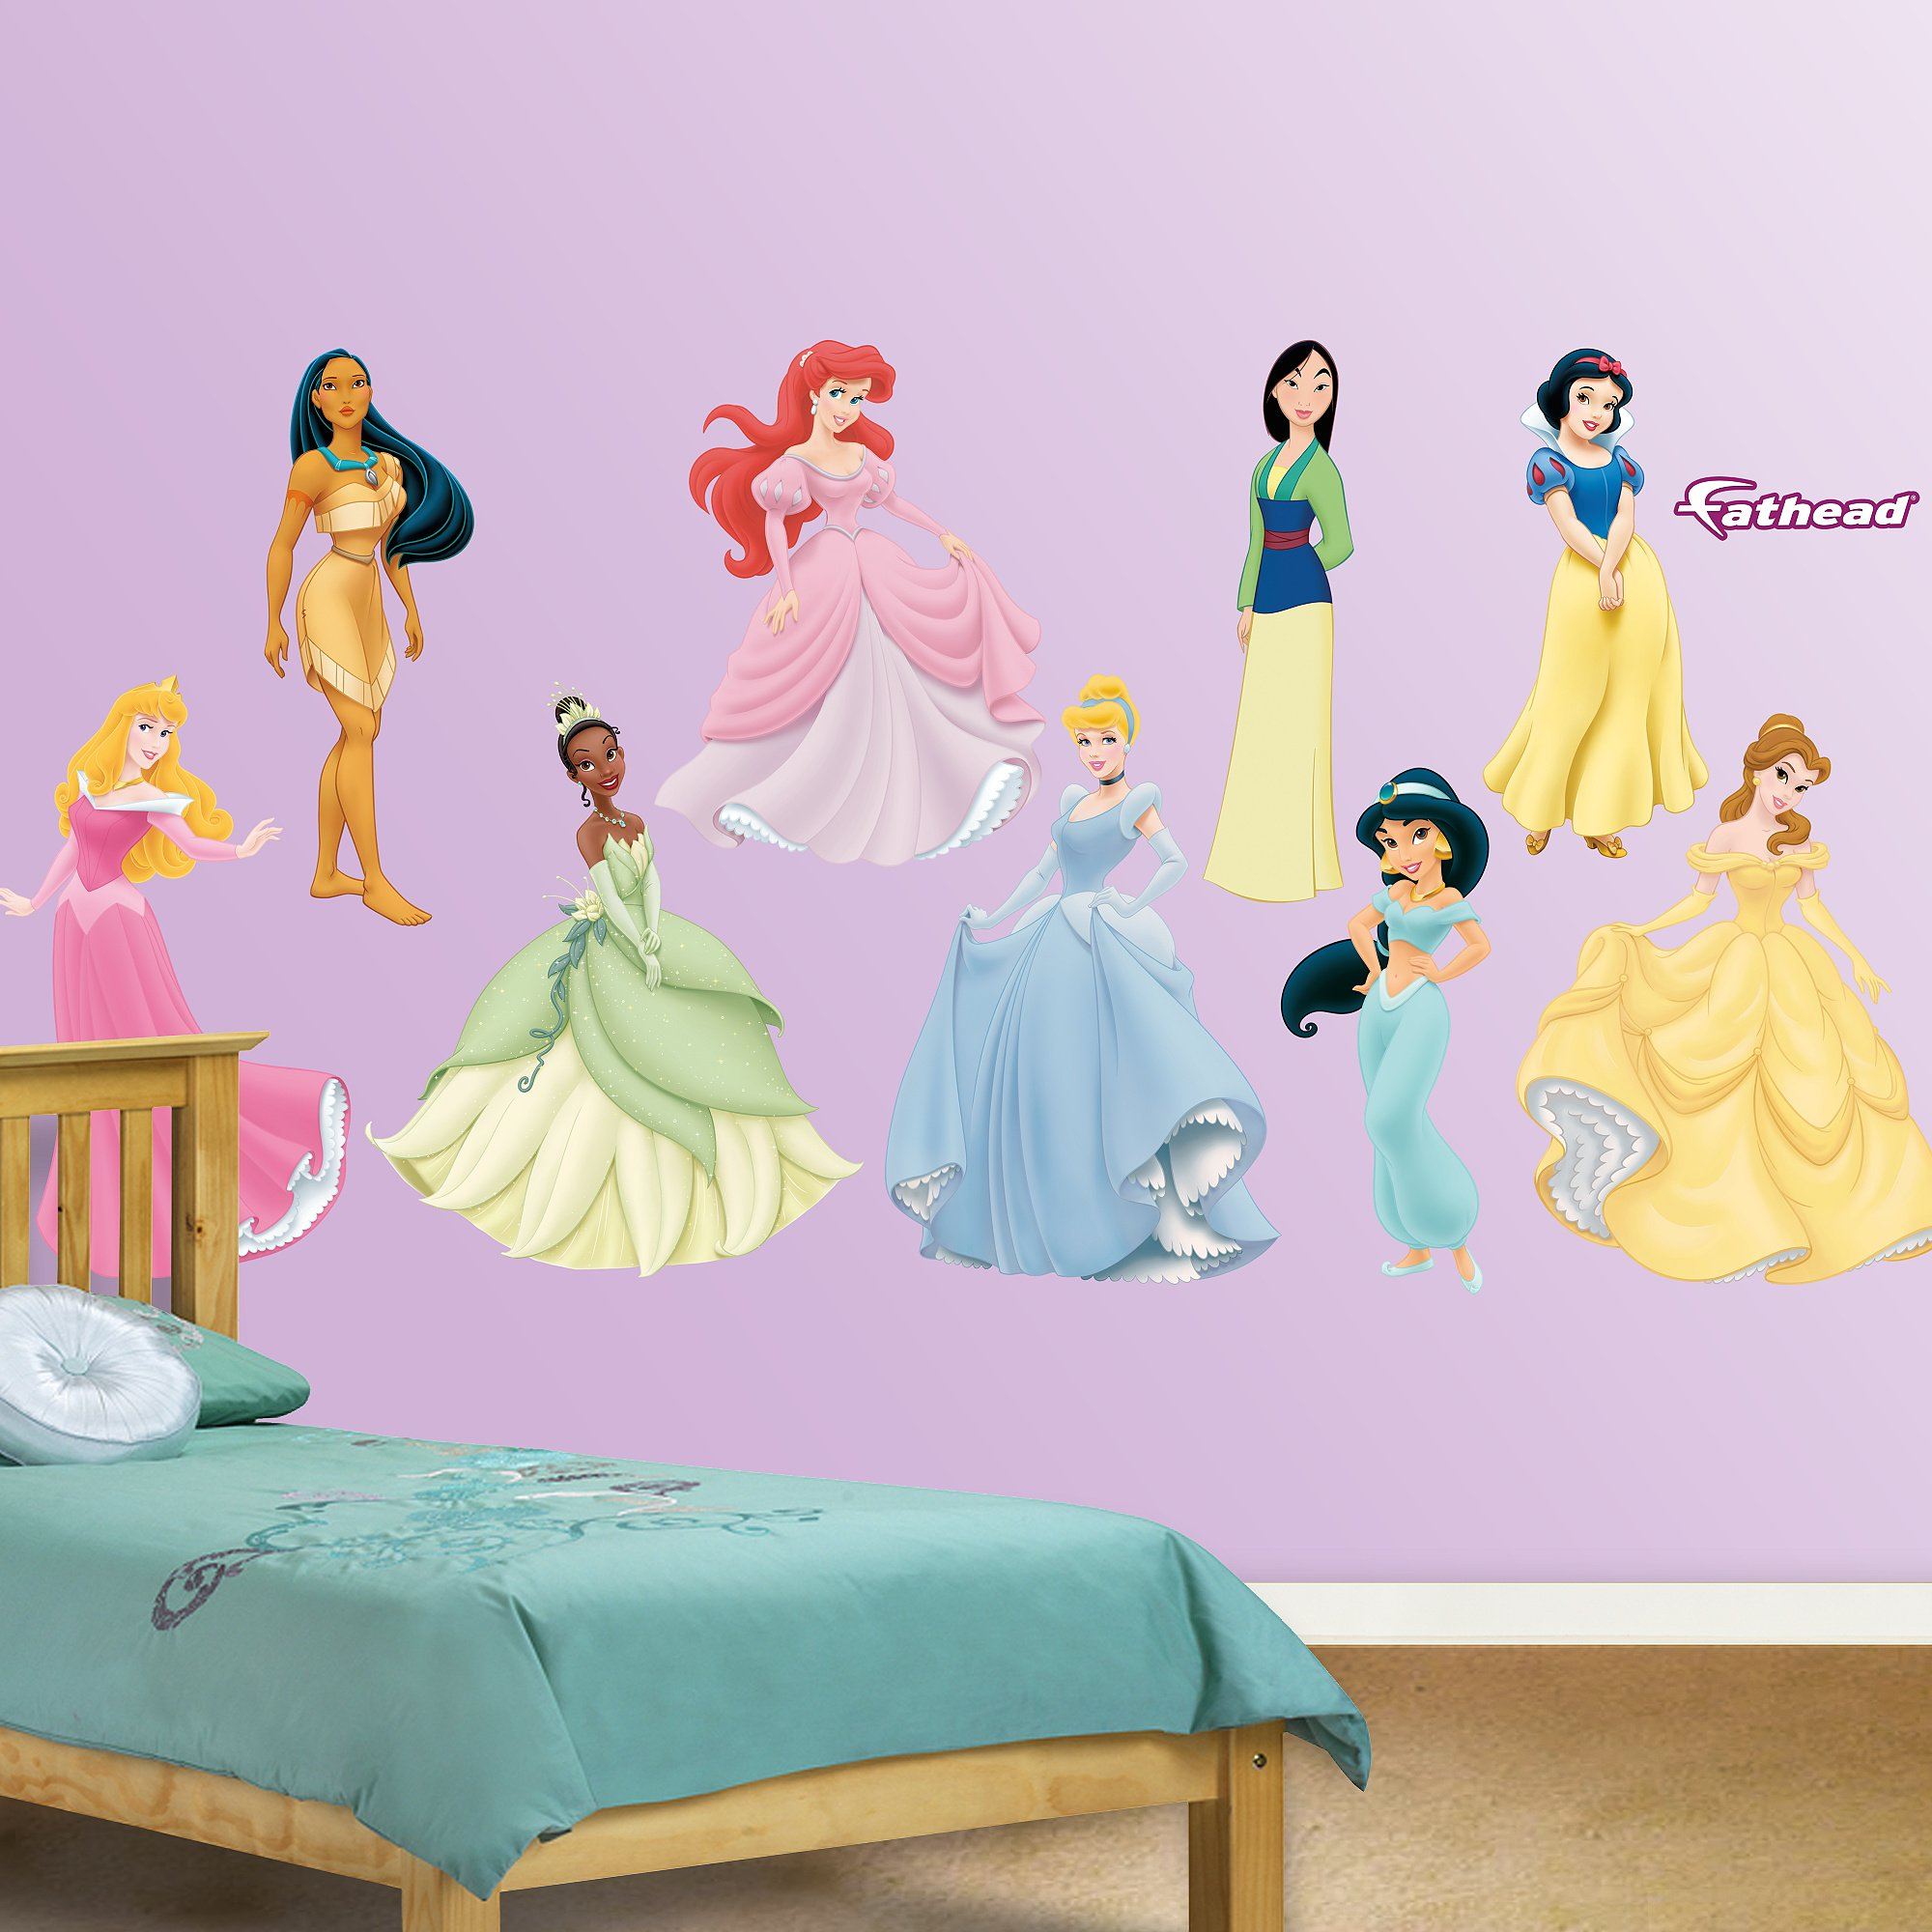 FATHEAD Disney Princess: Collection-X-Large Officially Licensed Removable Wall Decal by FATHEAD